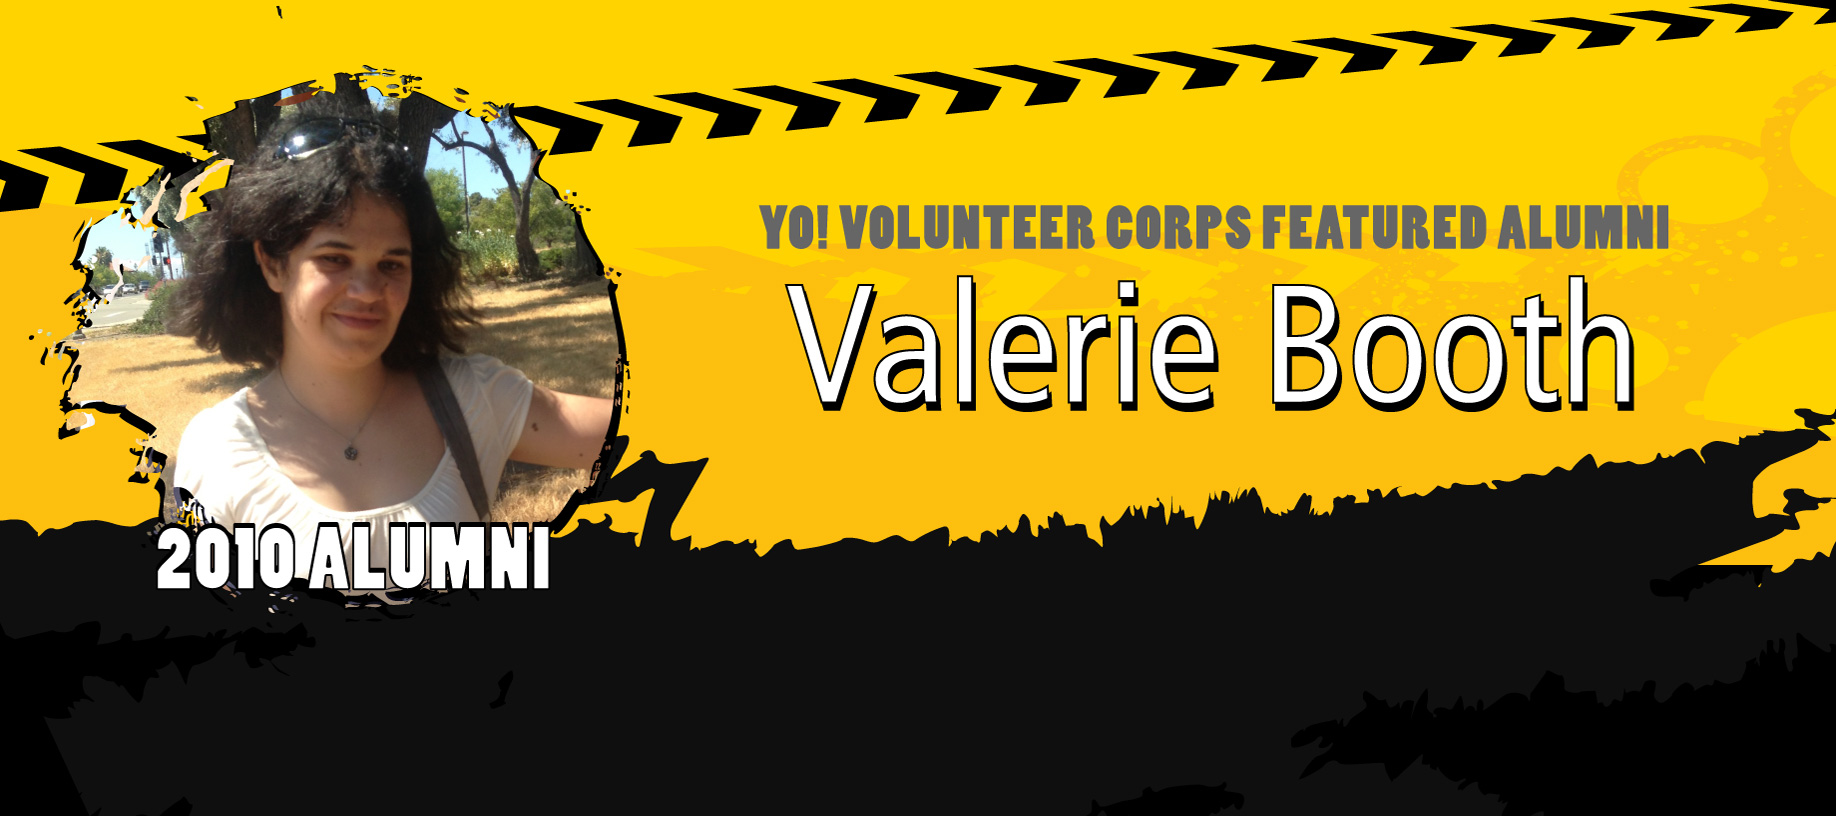 Banner of YO! Featured Alumn reading: YO! Volunteer Corps Featured Alumni Valerie Booth. 2010 Alumni.